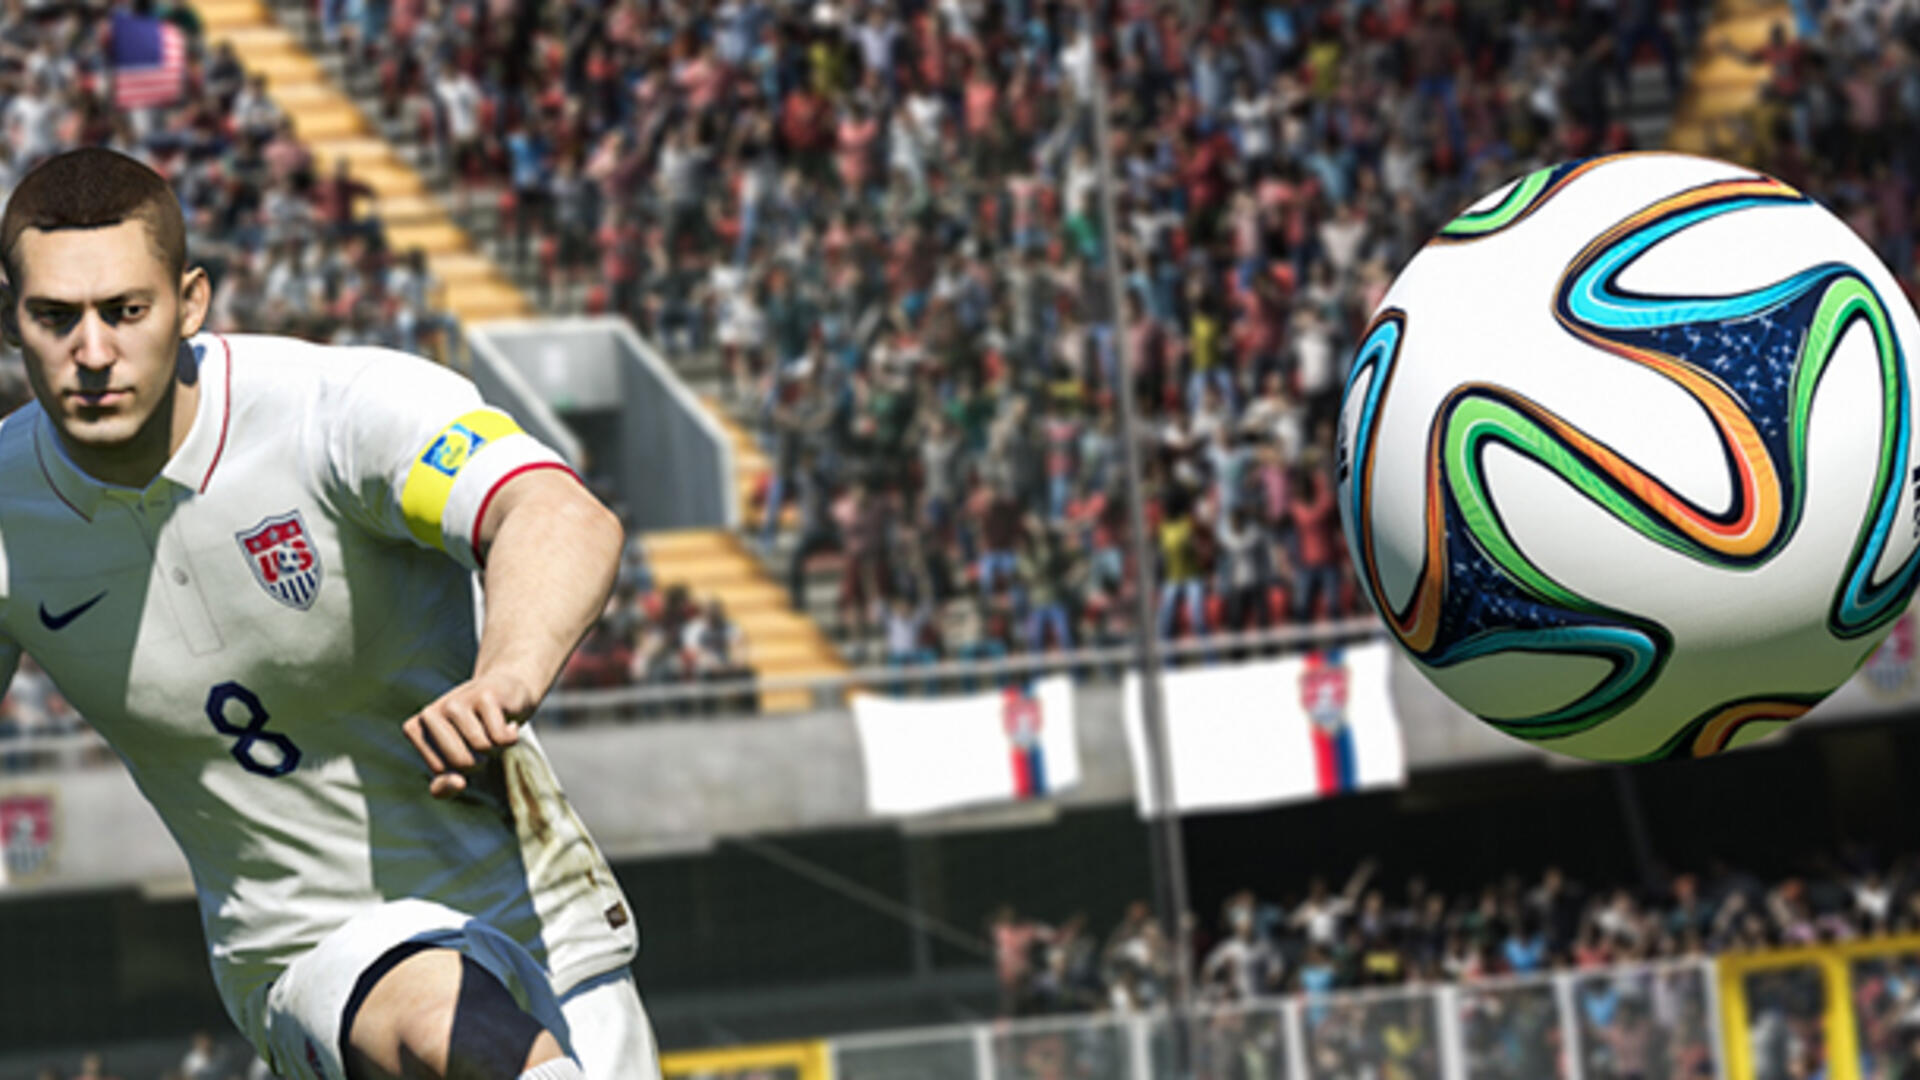 EA Sports FIFA Will Have to Step Up Now That the U.S. is Out of the World Cup